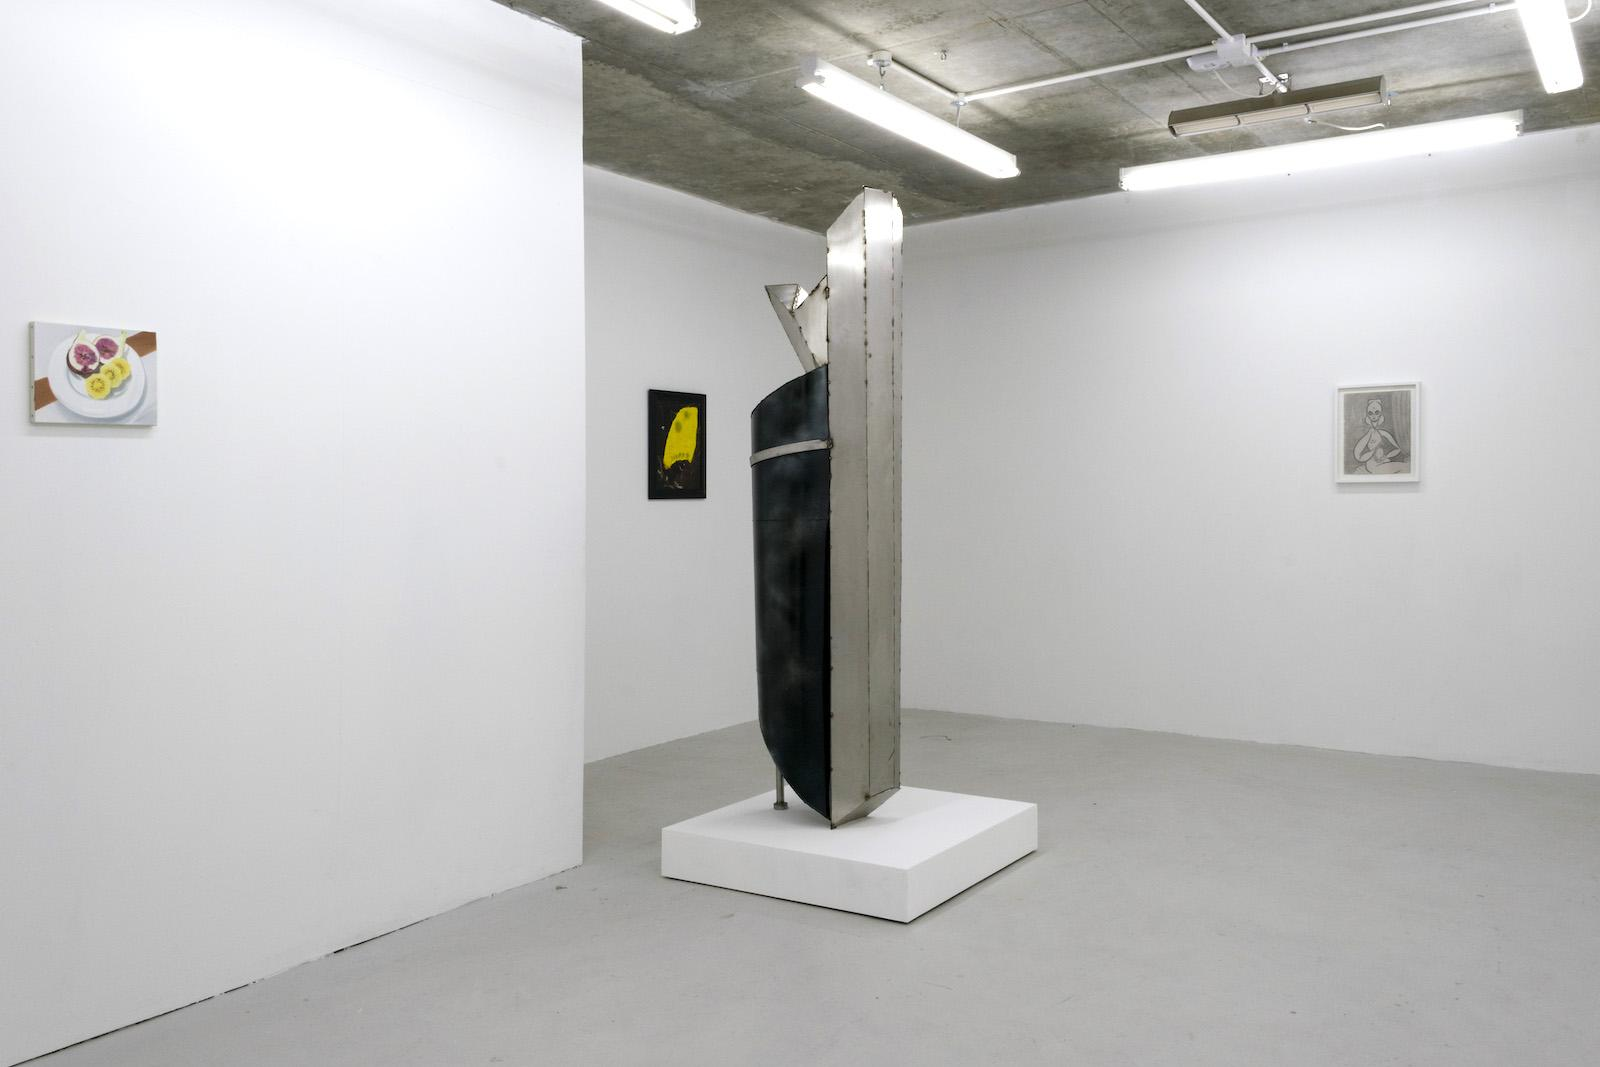 Installation view from Condo 2018 at Union Pacific ChertLüdde (Berlin), Misako & Rosen (Tokyo)and Gregor Staiger (Zurich) hosted by Union Pacific